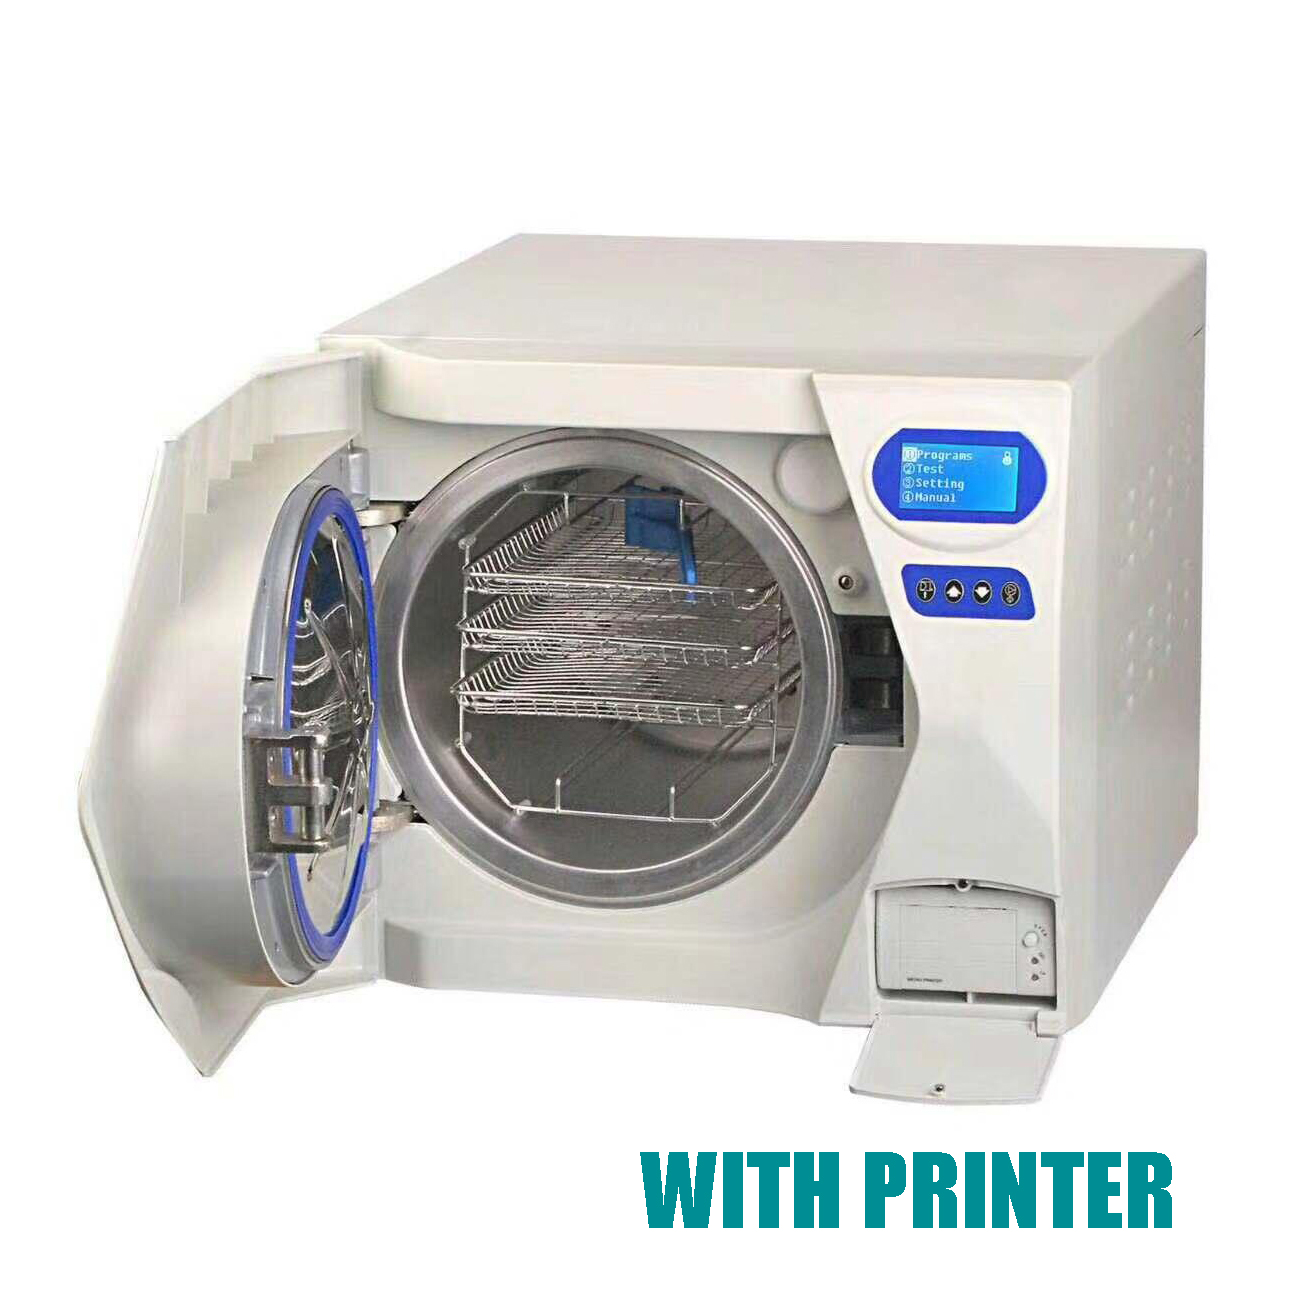 23L Class N Autoclave Sterilizer Vacuum Steam B Series WITH PRINTER